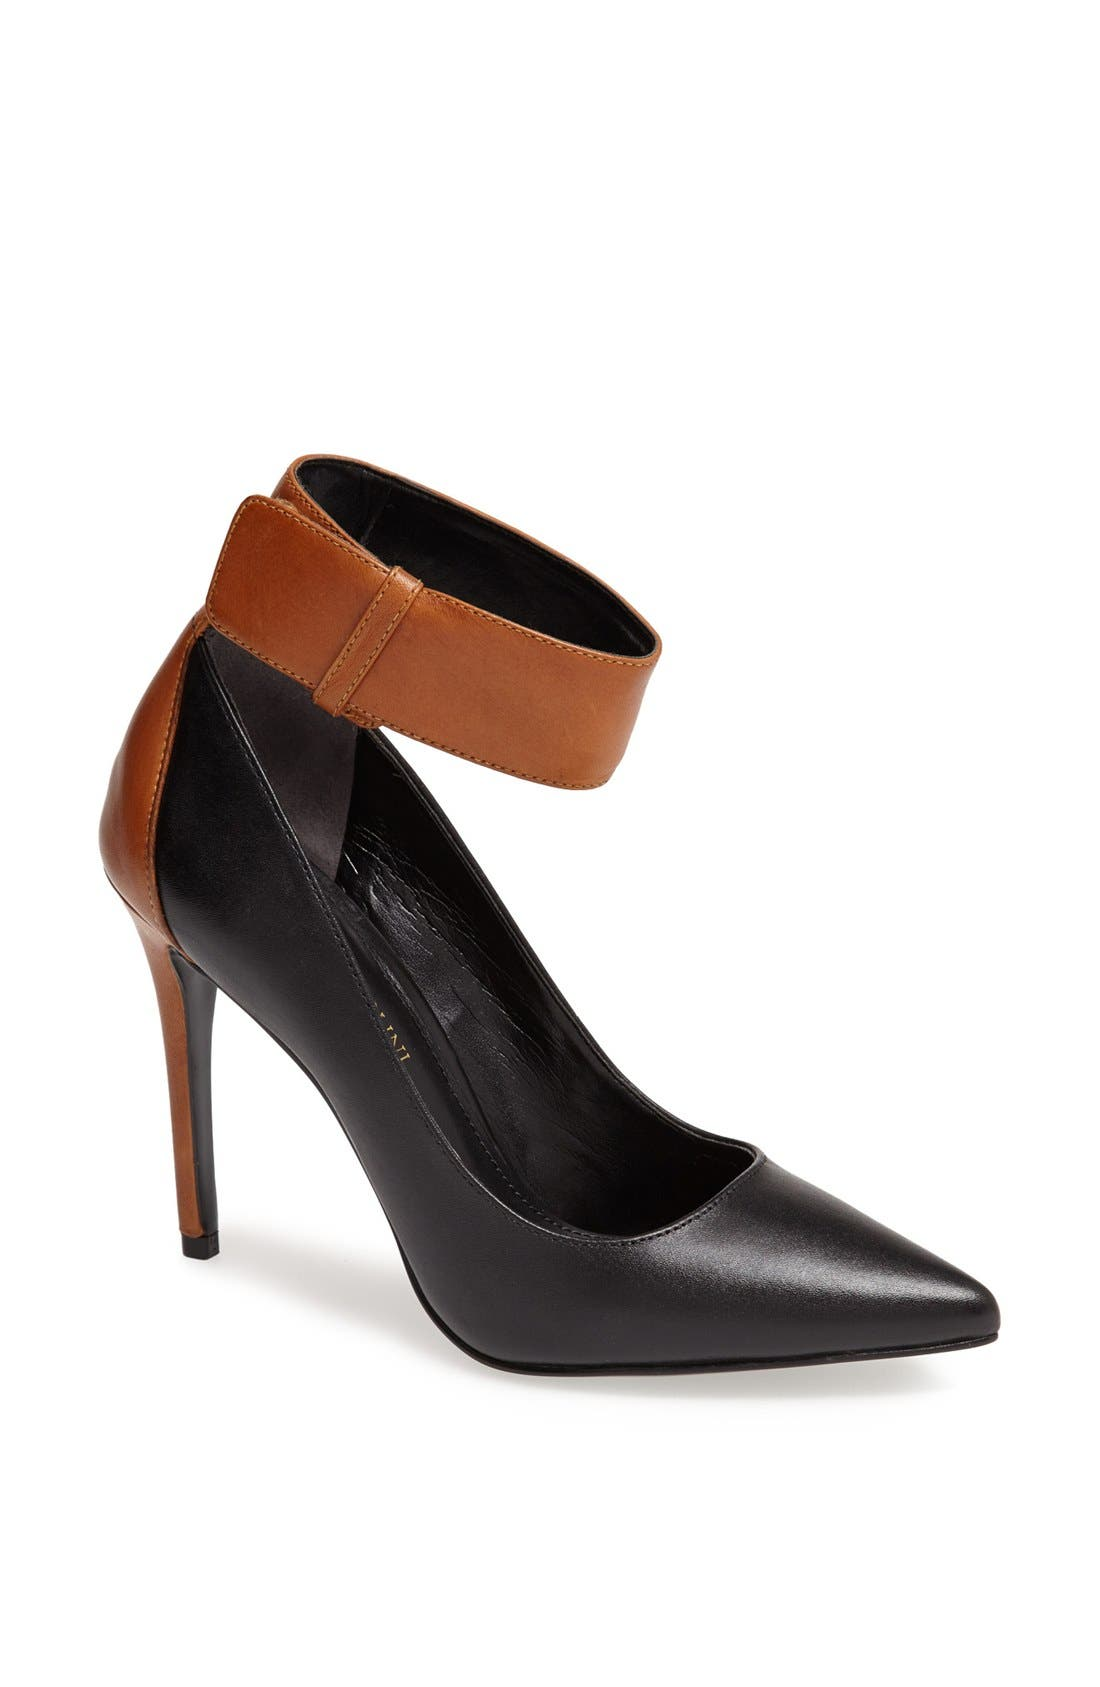 Main Image - Enzo Angiolini 'Fastir' Leather Pump